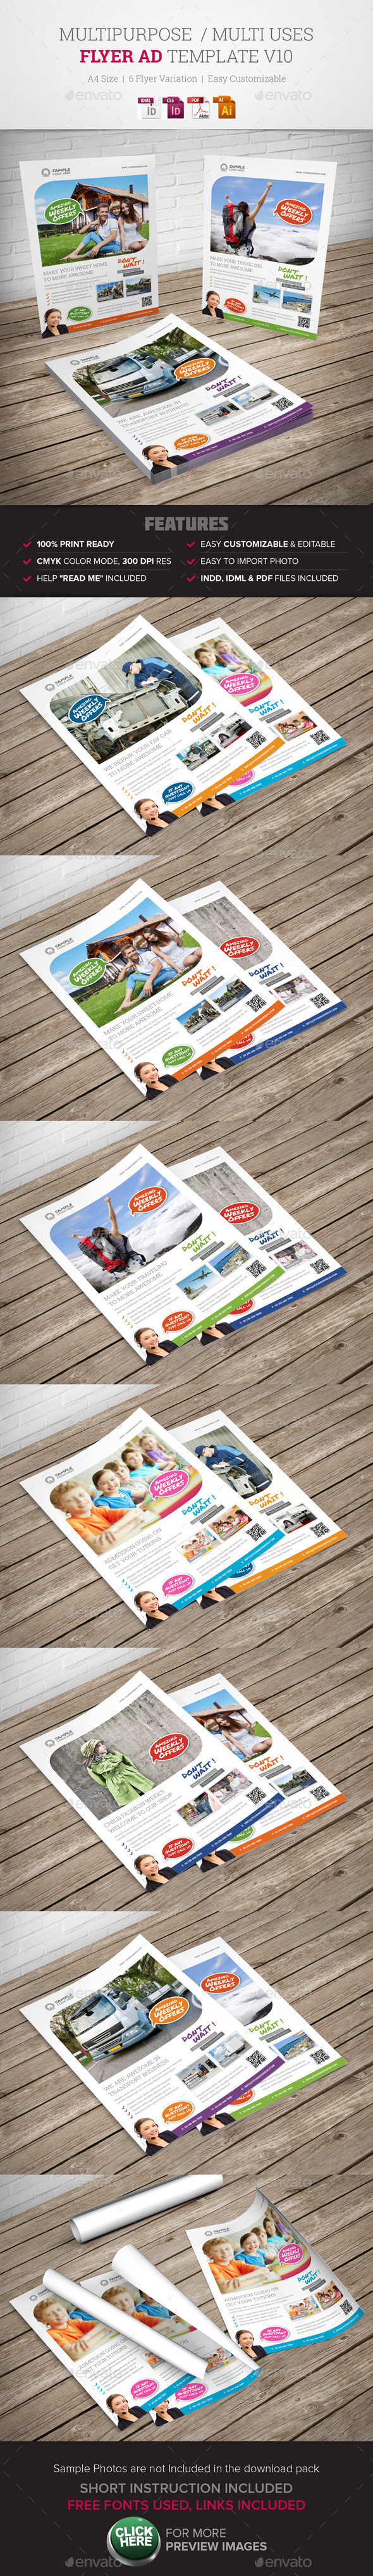 Corporate/ Multipurpose Flyer Ad v10  - Corporate Flyers